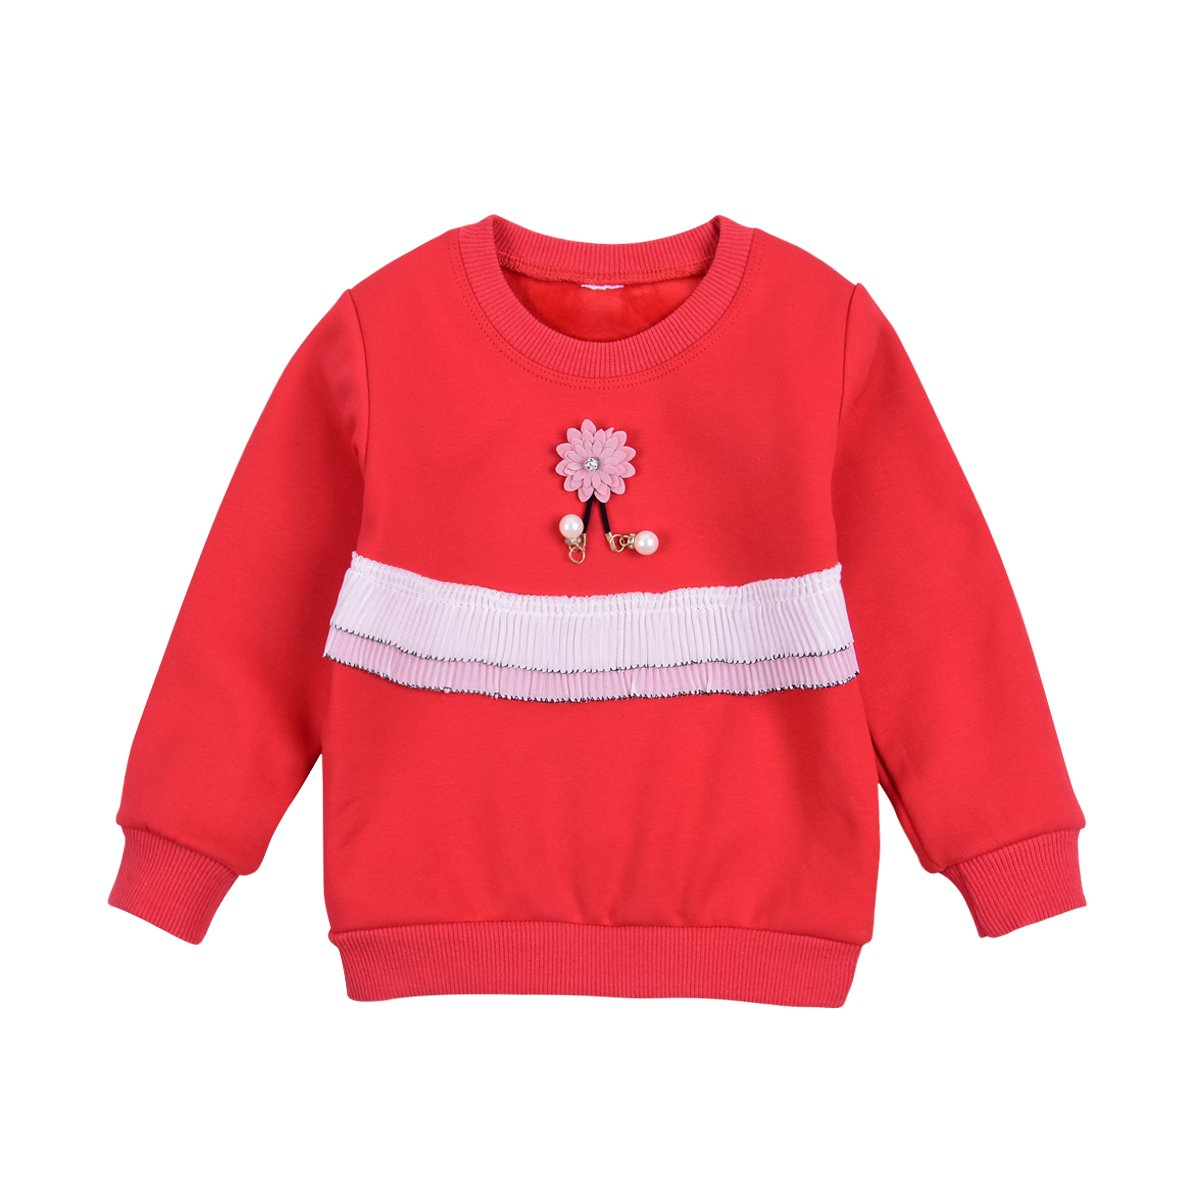 Crewneck Sweatshirt Toddler Baby Girl Solid Fleece Pullover Shirt Kids Clothes for 1-5Years